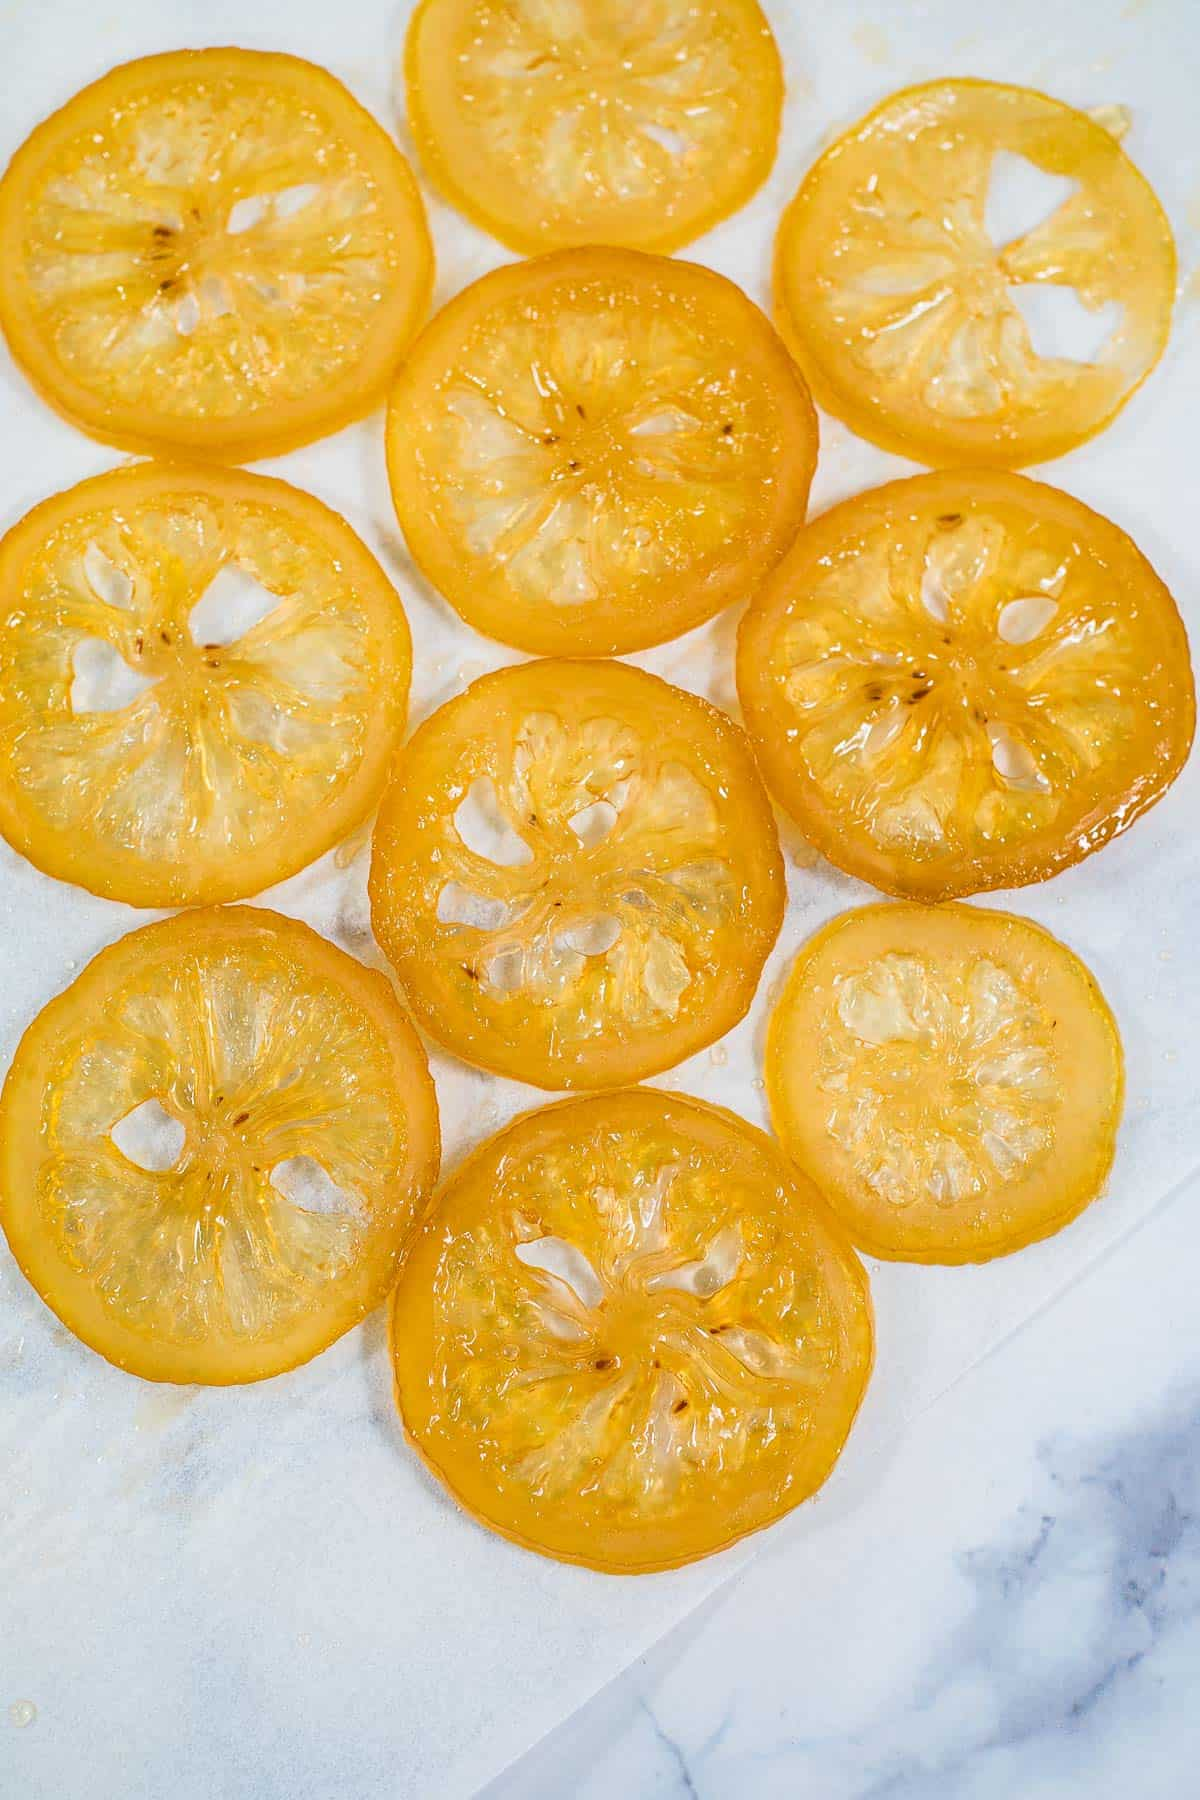 Close up of candied lemon slices against a marble background